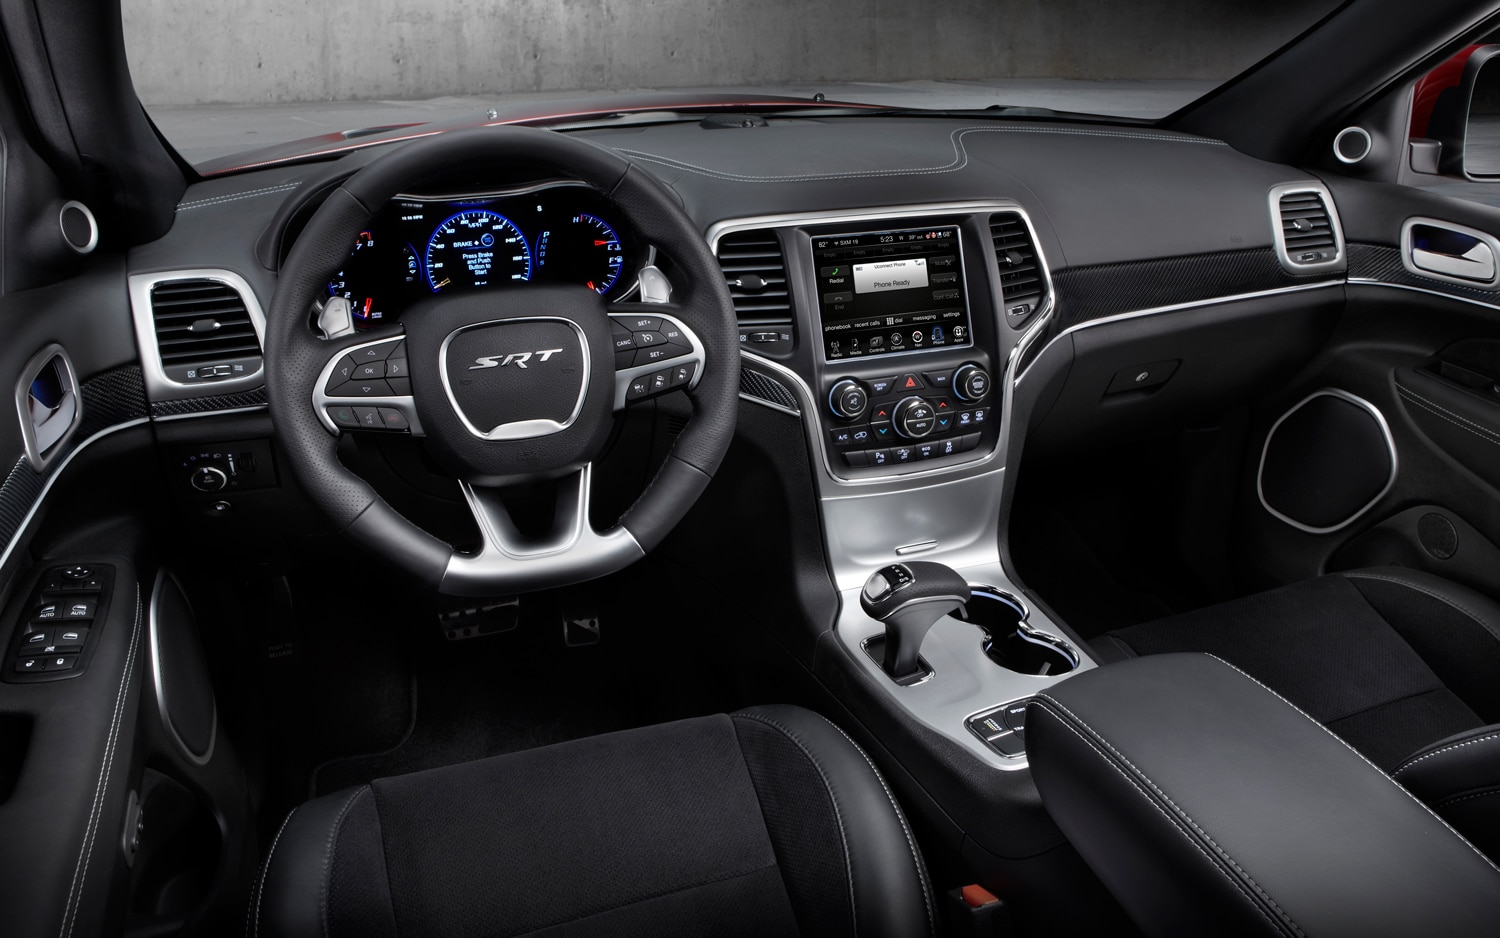 2014 Jeep Grand Cherokee SRT Dash